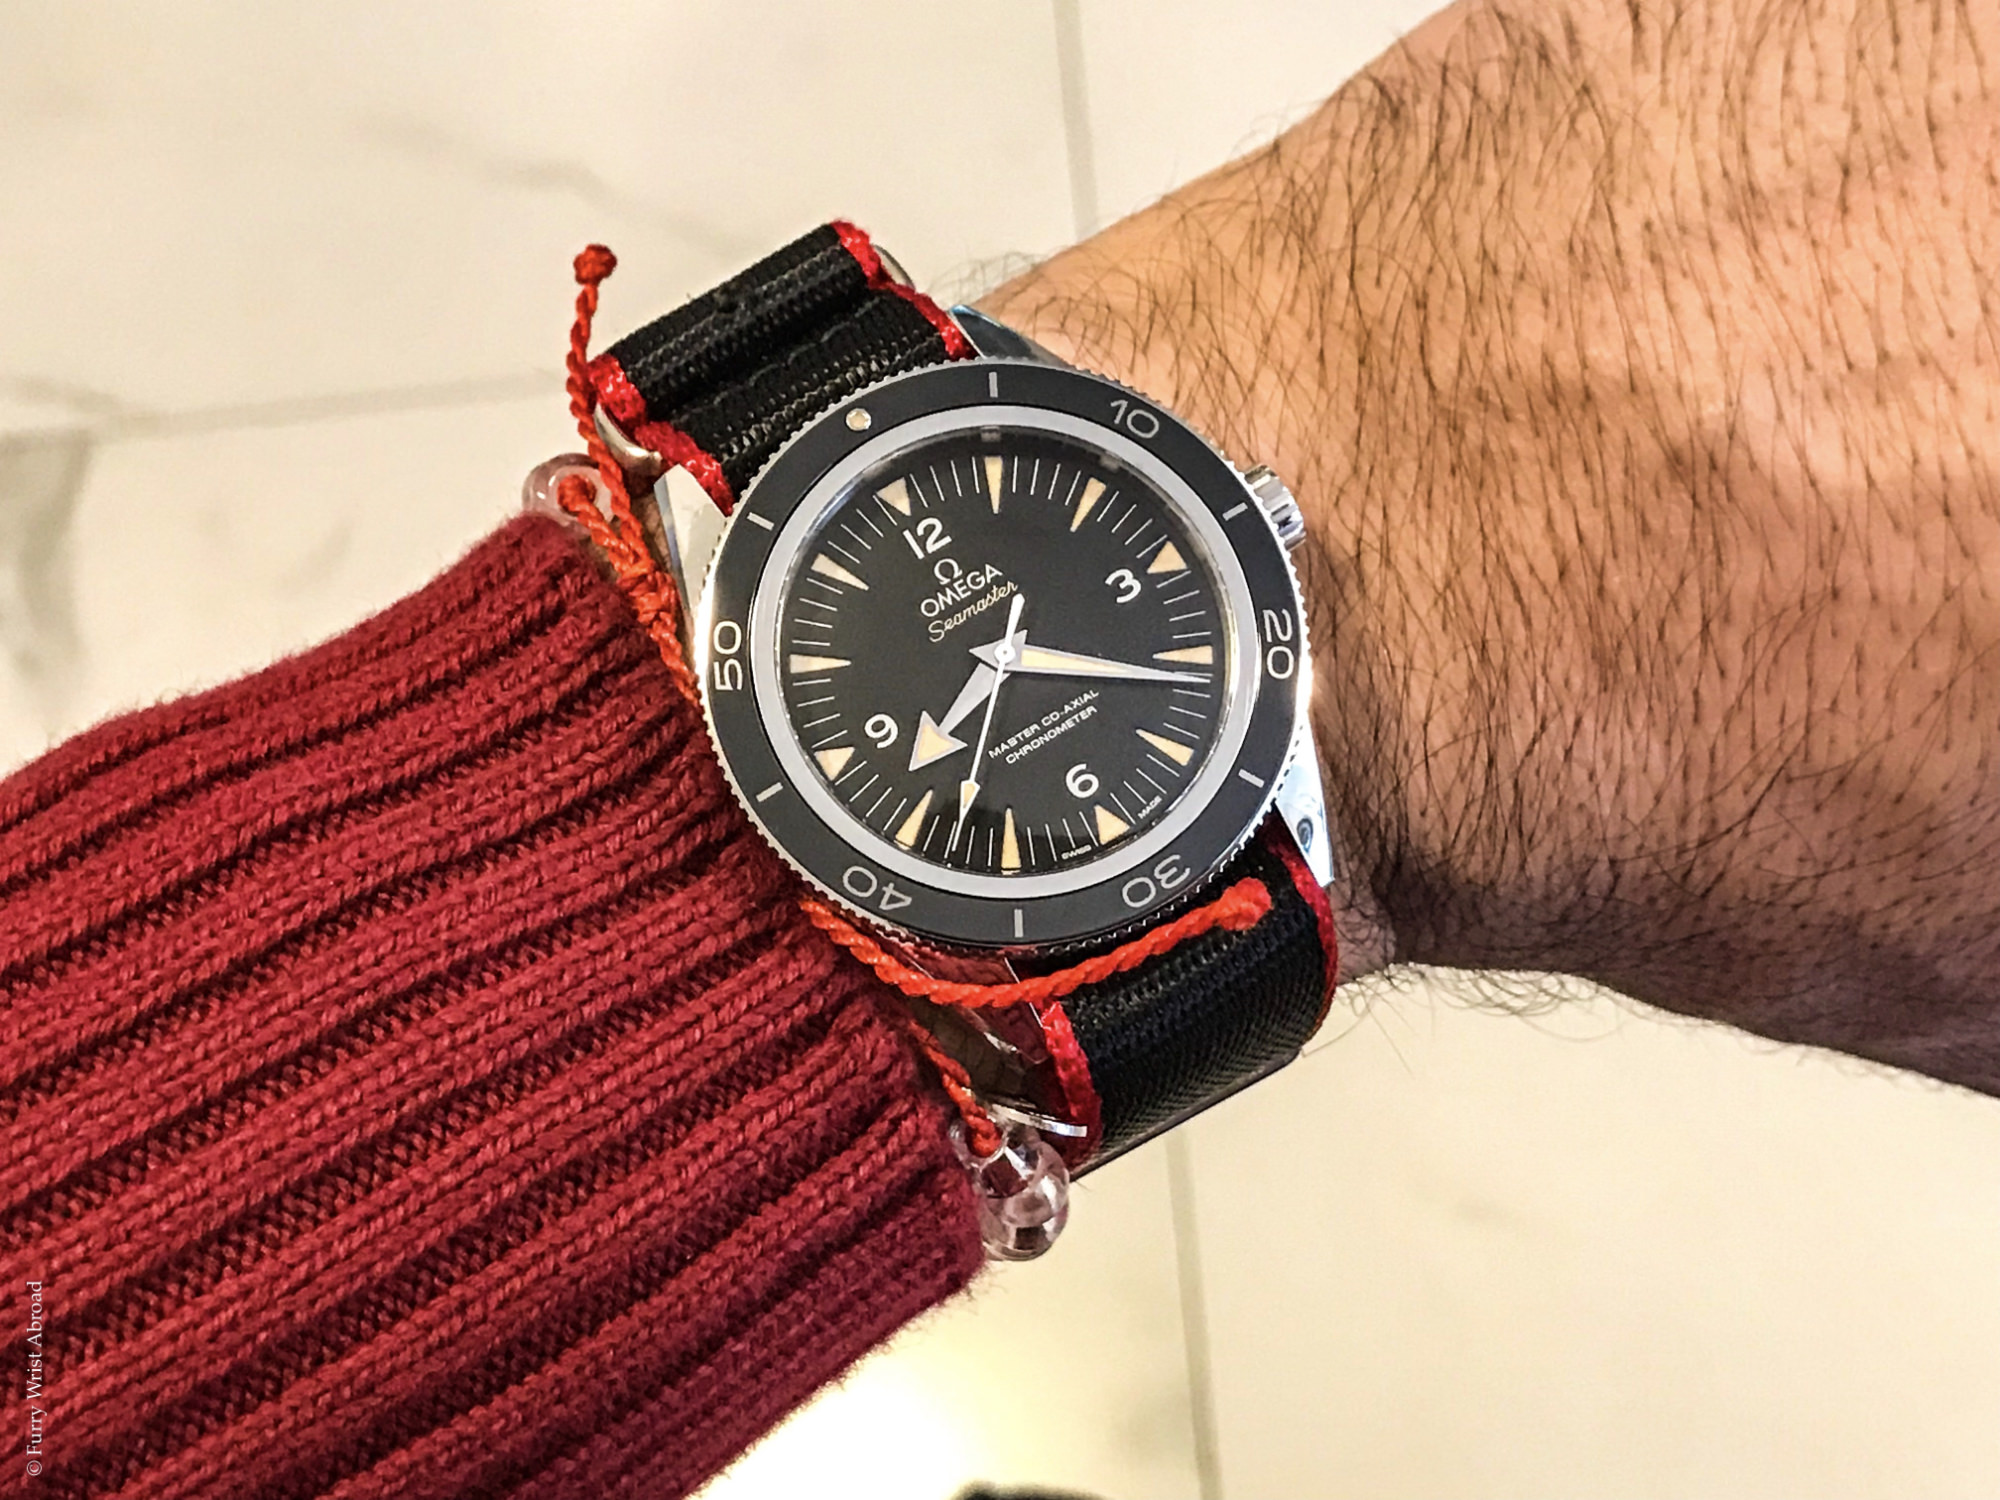 omega-seamaster-300-review-48